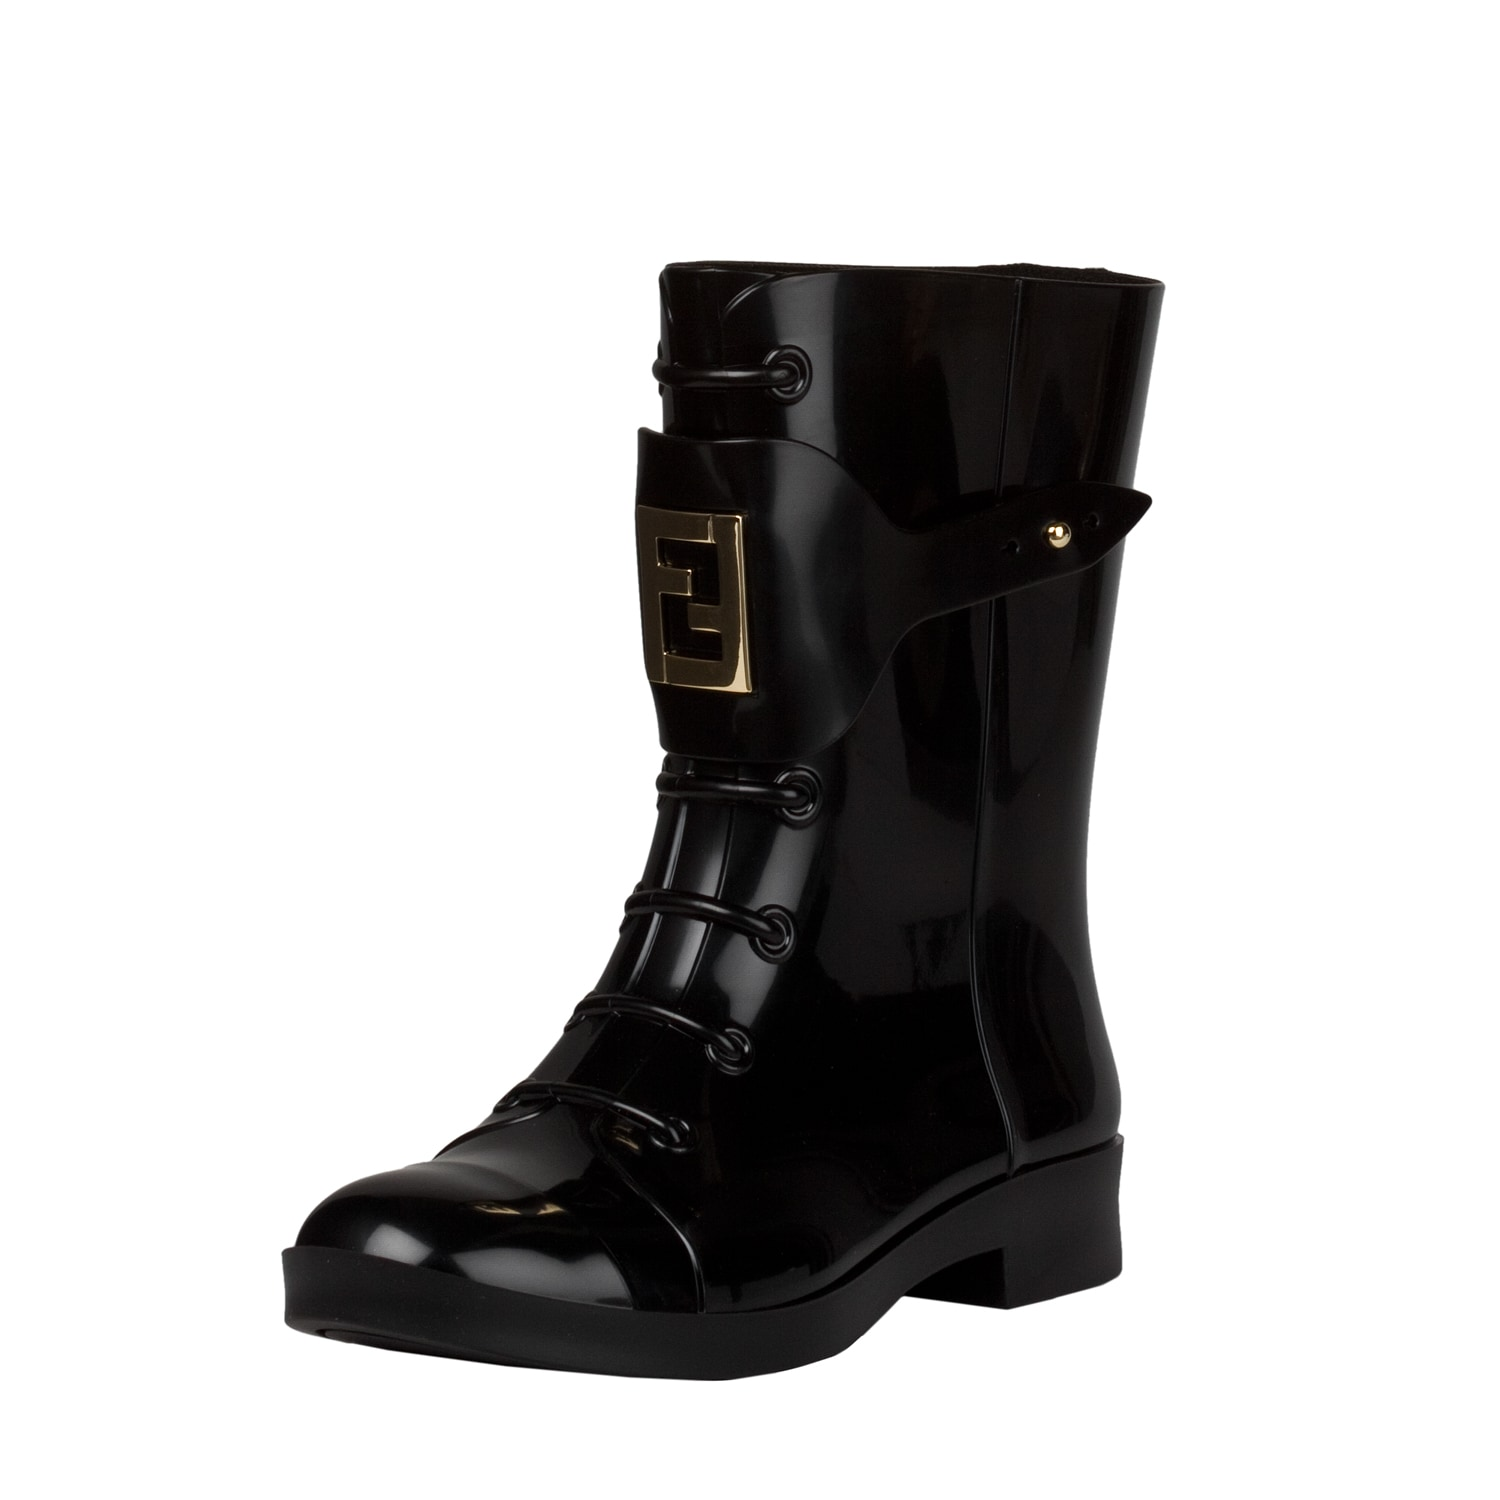 c1f4a1fce10 Shop Fendi Women s Black Lace-up Rubber Short Rain Boots - Free Shipping  Today - Overstock - 6552179